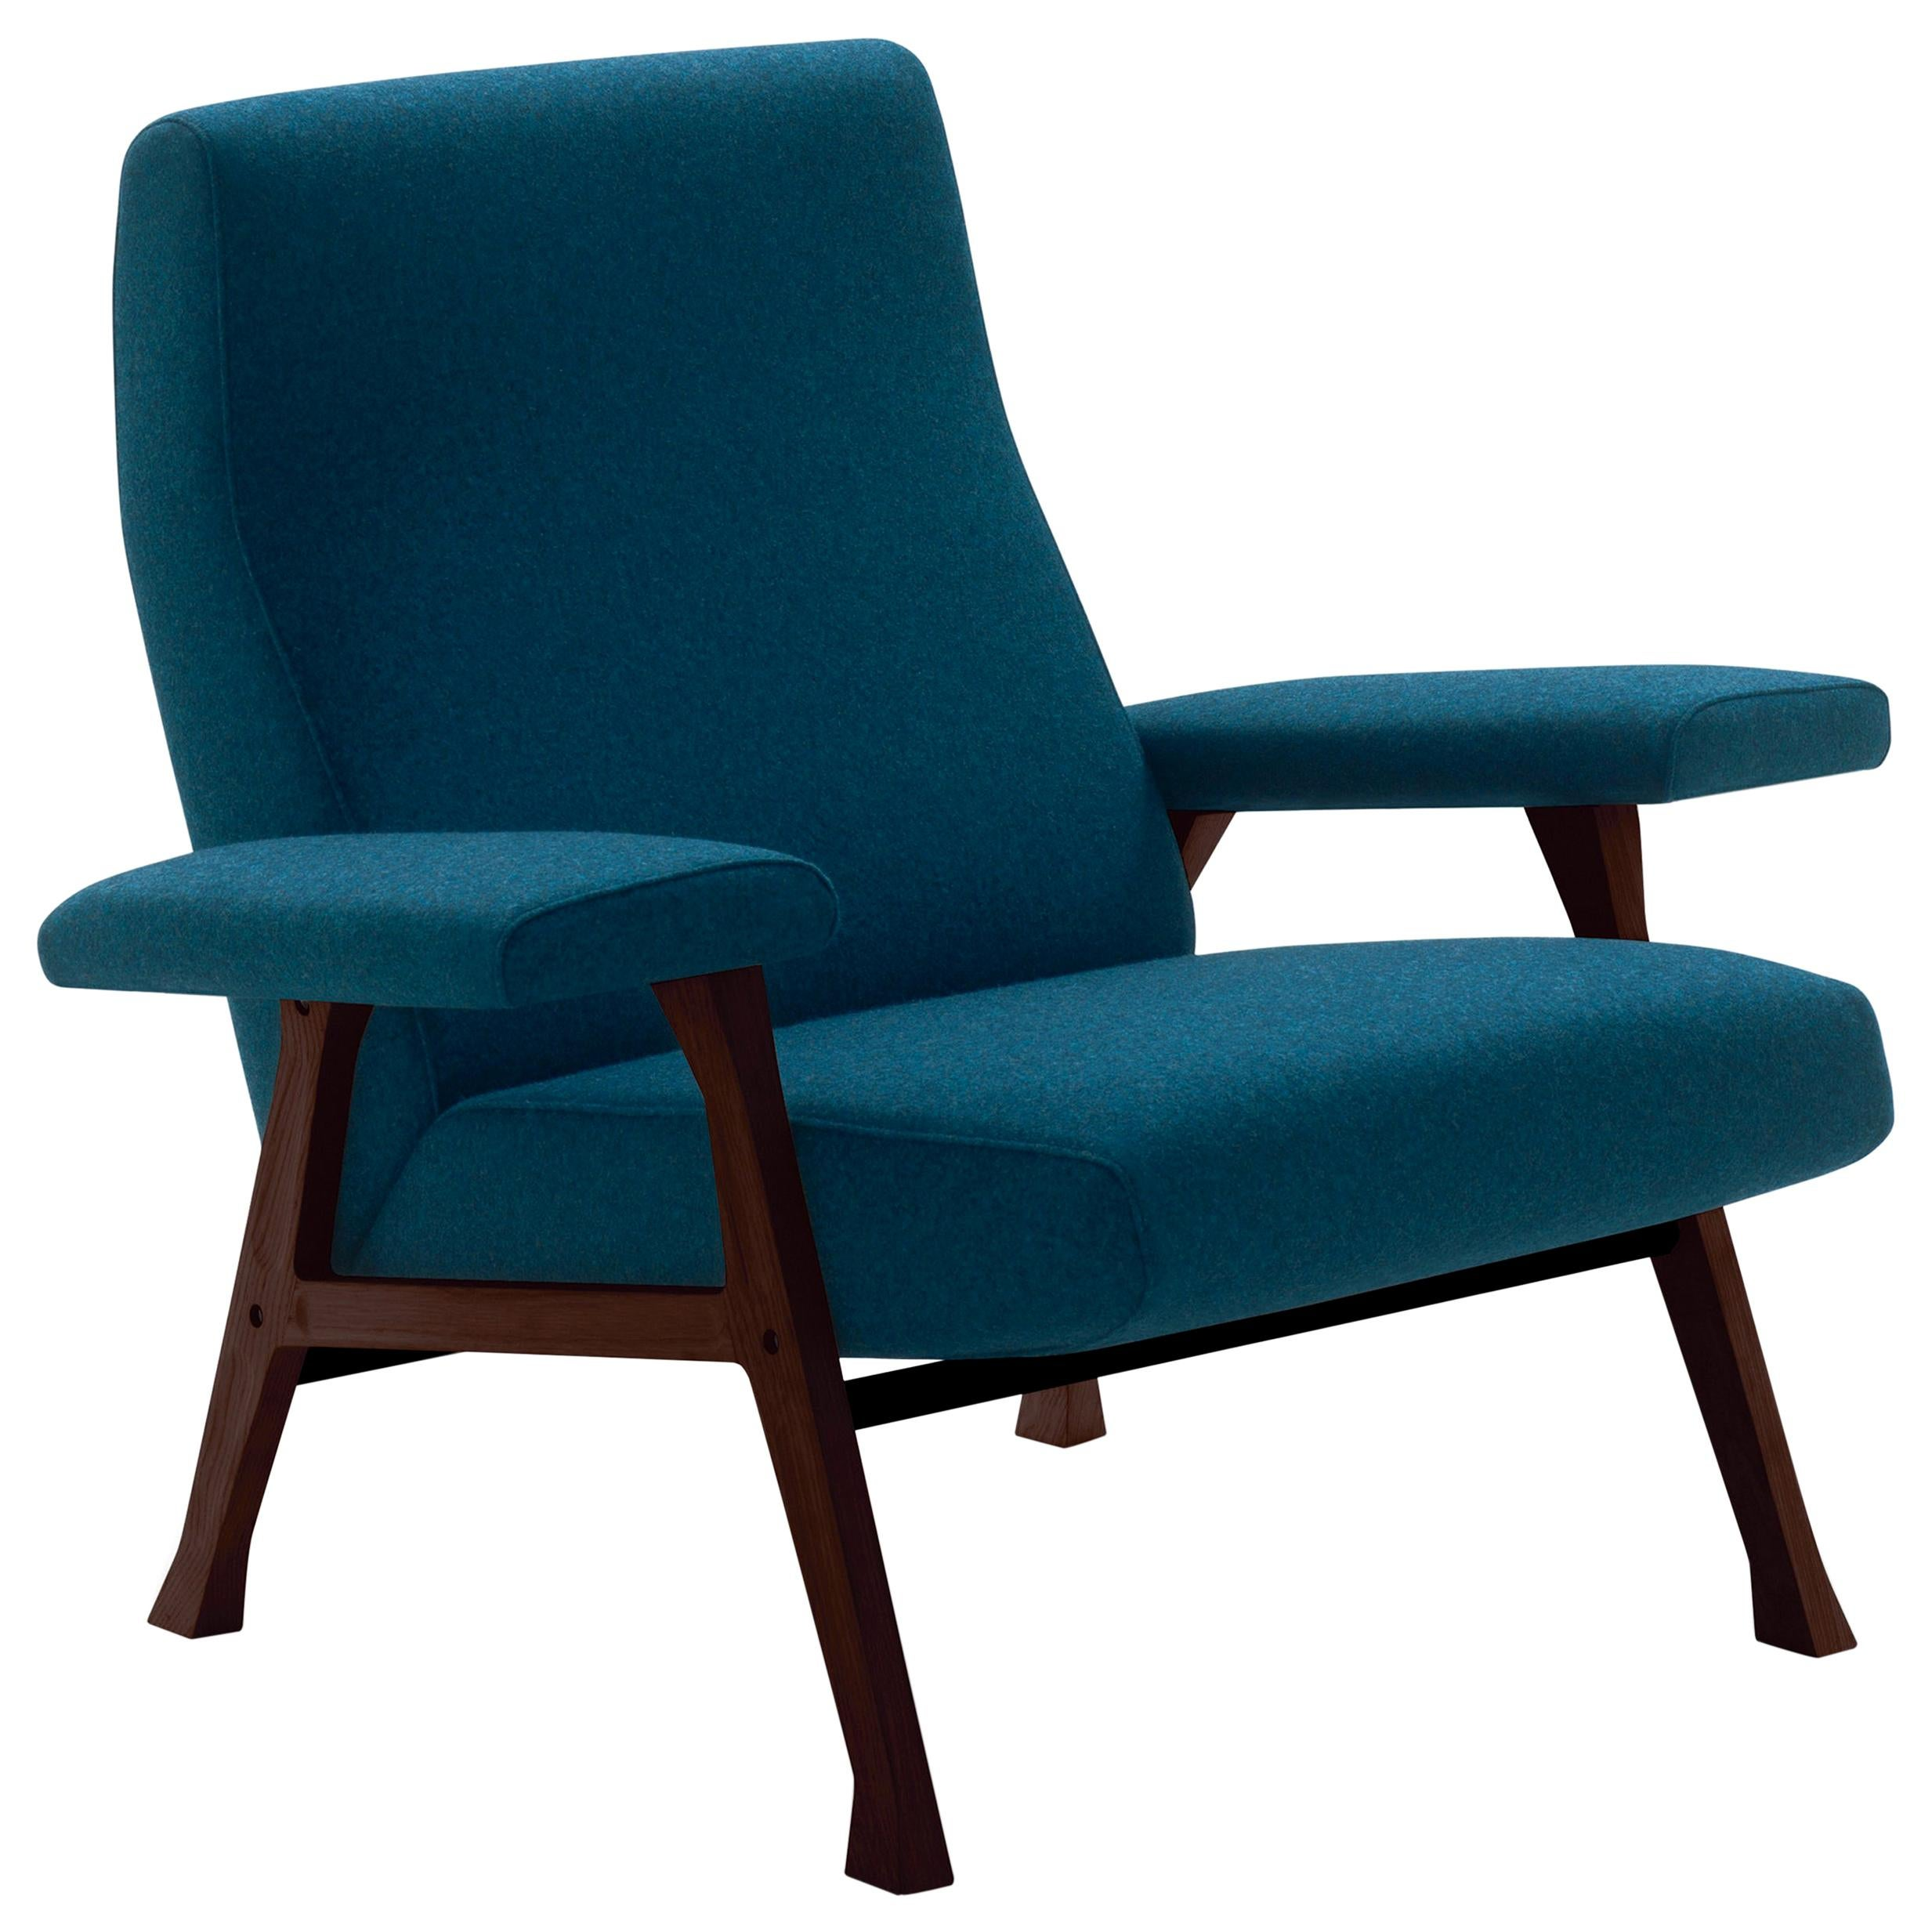 Arflex Hall Armchair in Blue Divina Fabric and Wood Legs by Roberto Menghi